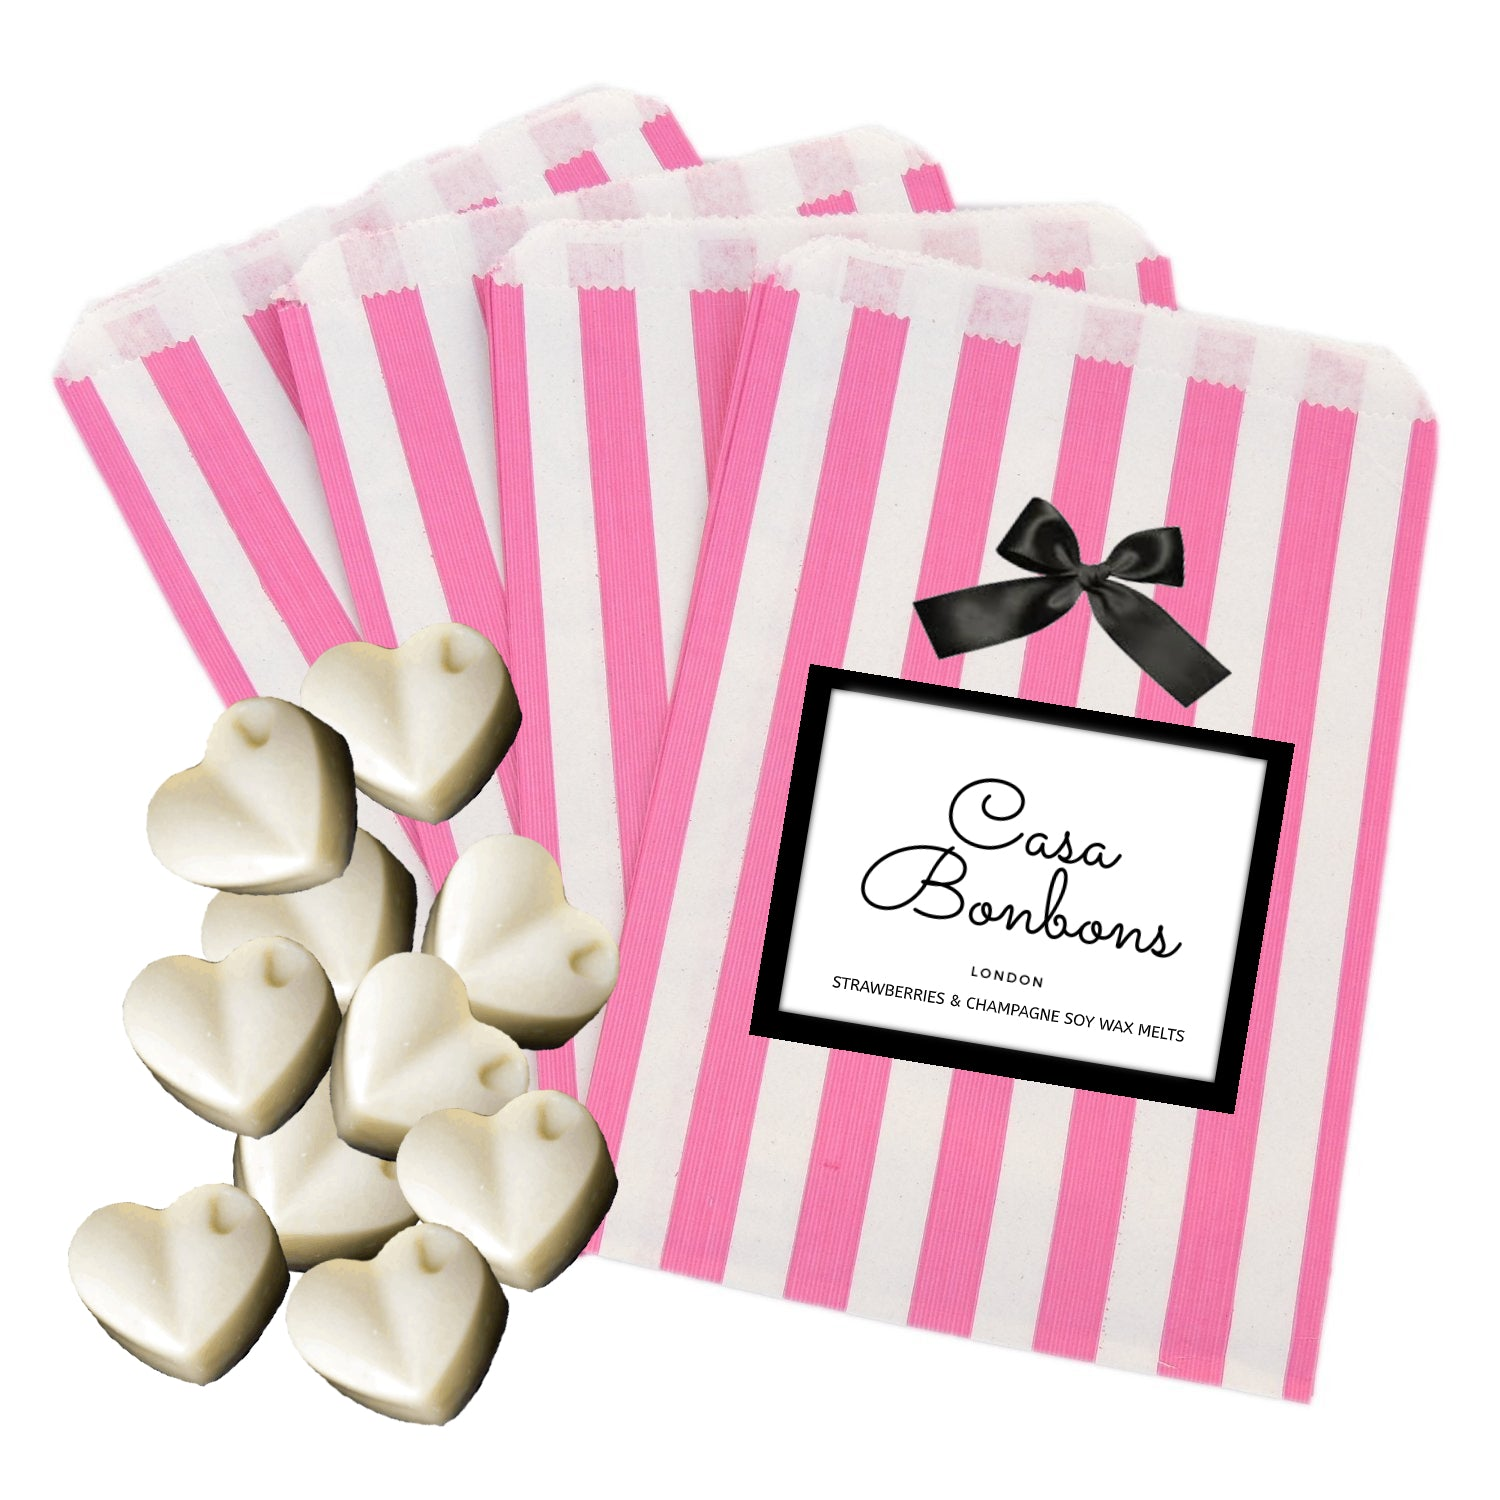 Strawberry & Champagne gentle scented Soy Wax Melts (10 hearts),  PRE ORDER delivery end of February - natoorio